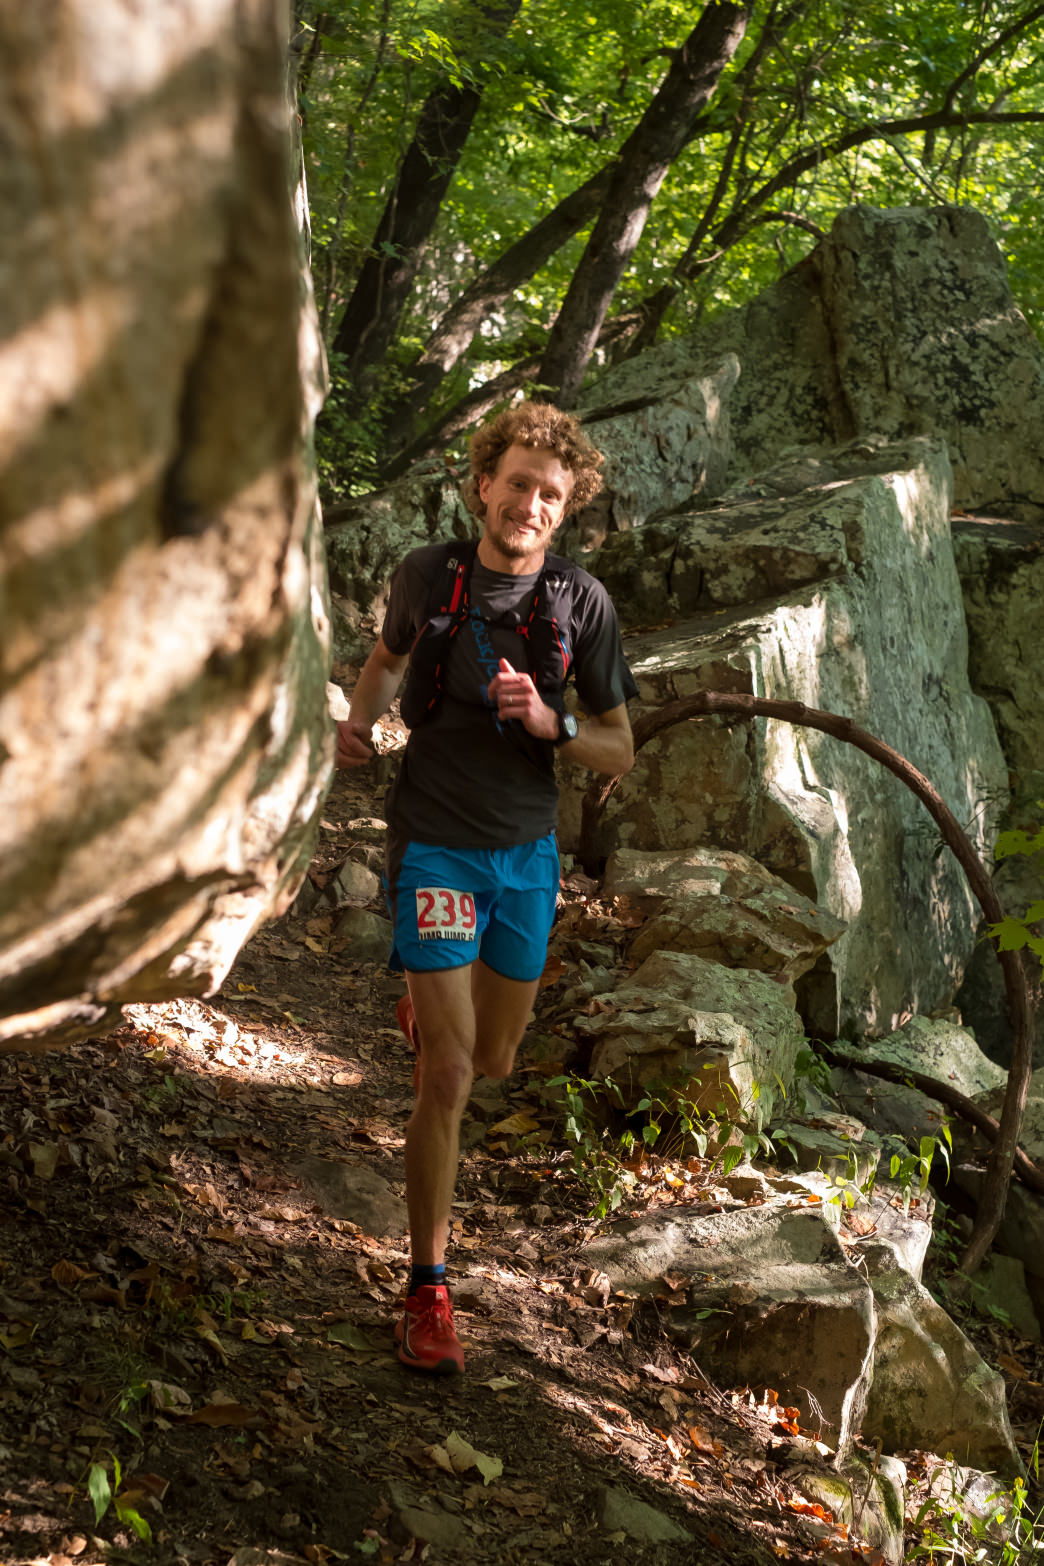 The StumpJump 50K is nationally recognized in the trail running community.